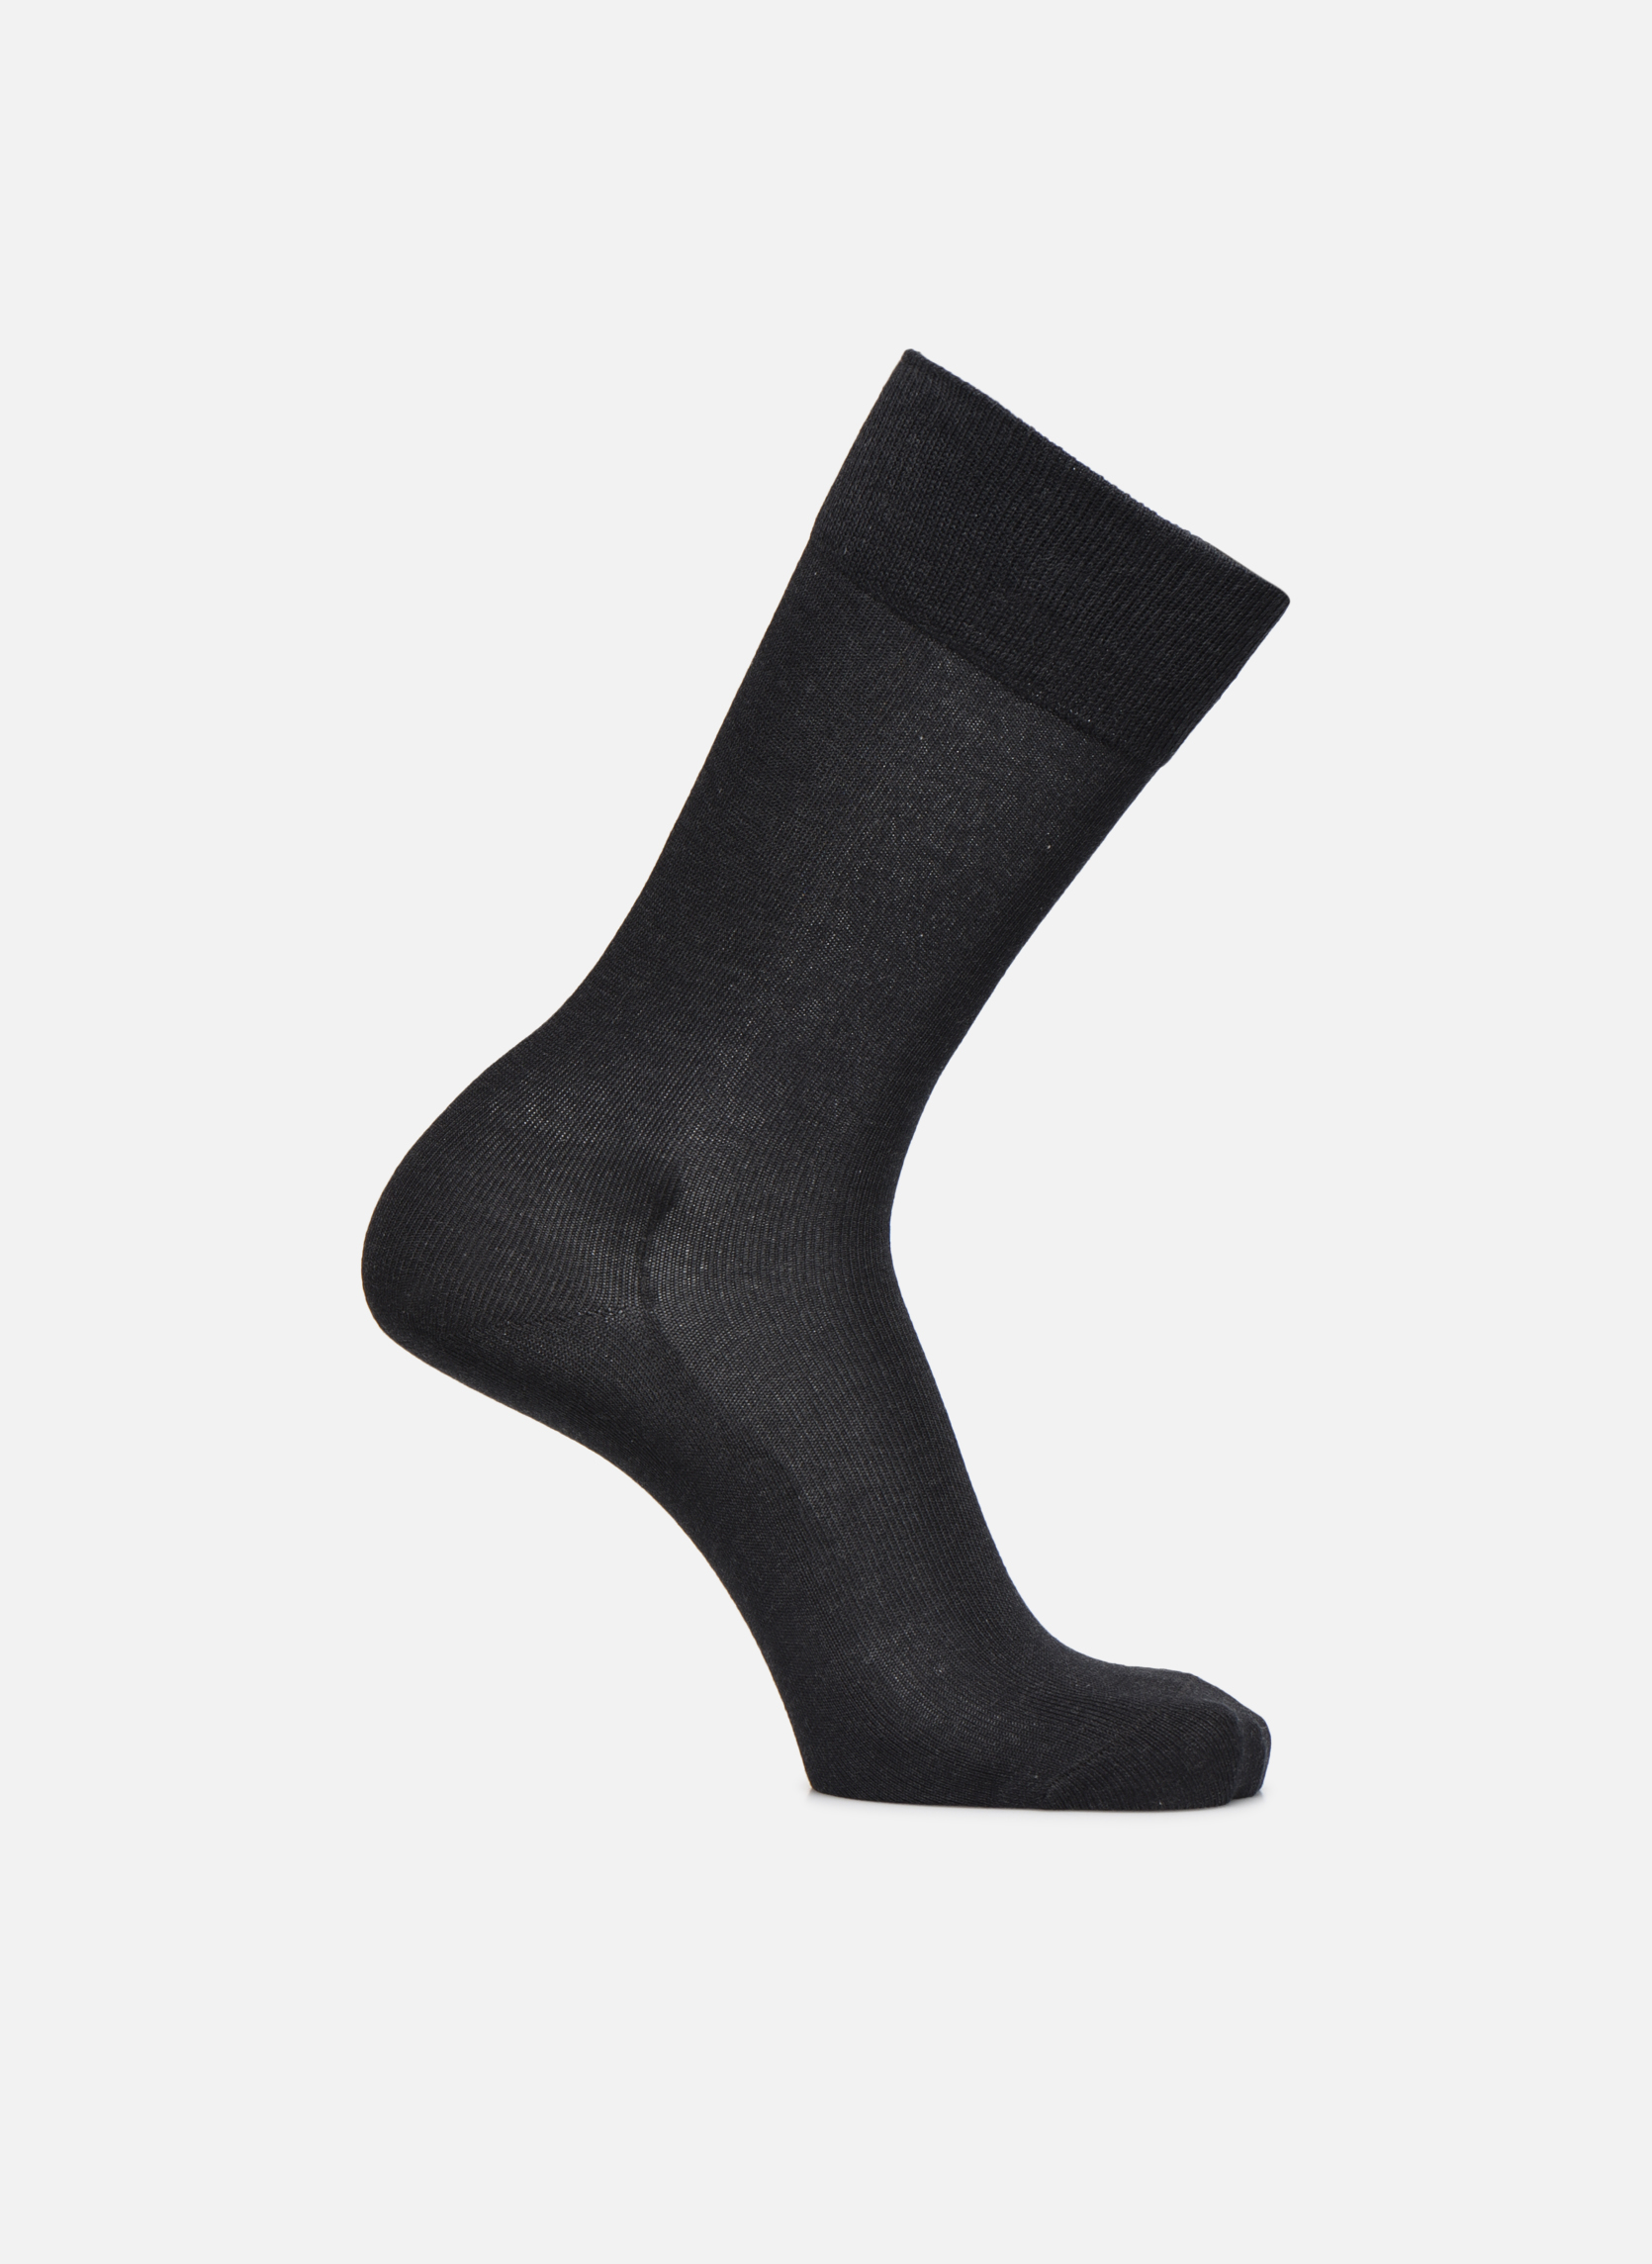 Chaussettes FAMILY 3080 anthracite